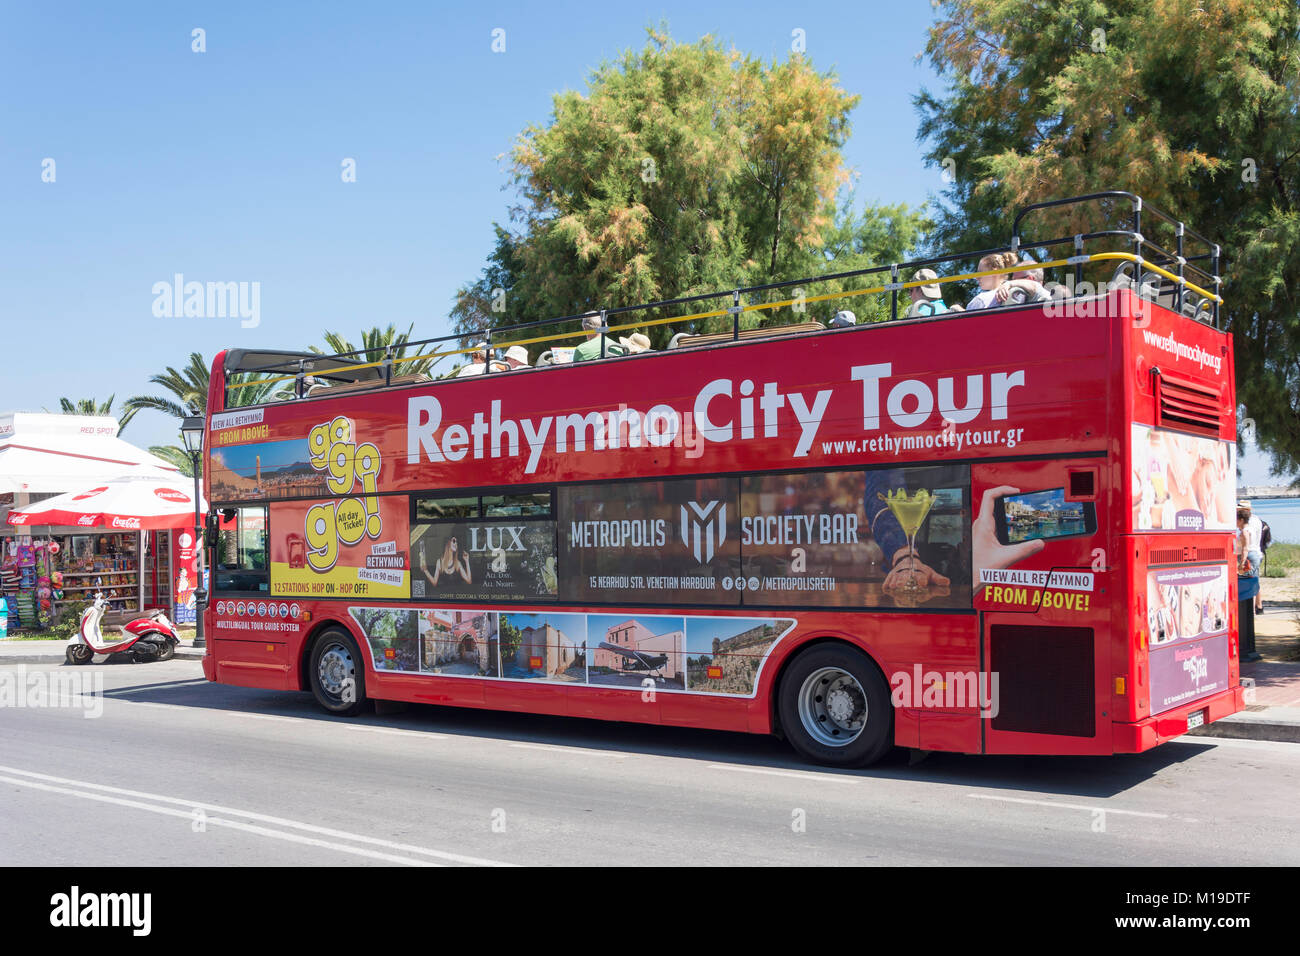 Open-top Rethymno City Tour bus, Sofokli Venizelou, Rethymnon (Rethymno), Rethymno Region, Crete (Kriti), Greece Stock Photo